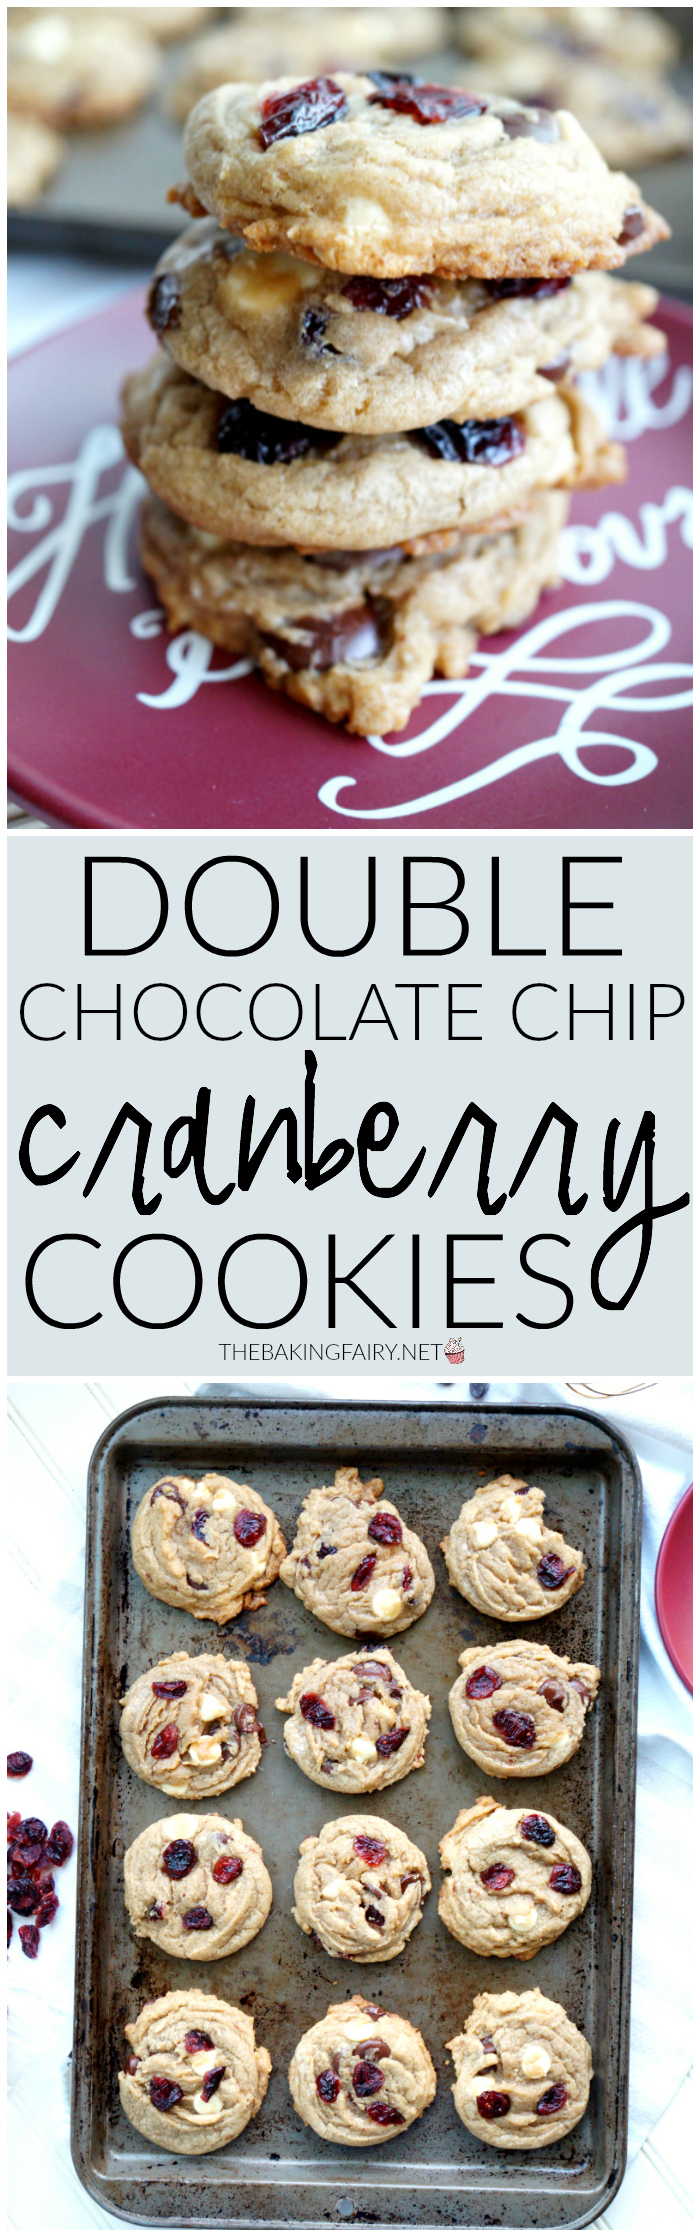 double chocolate chip cranberry cookies   The Baking Fairy